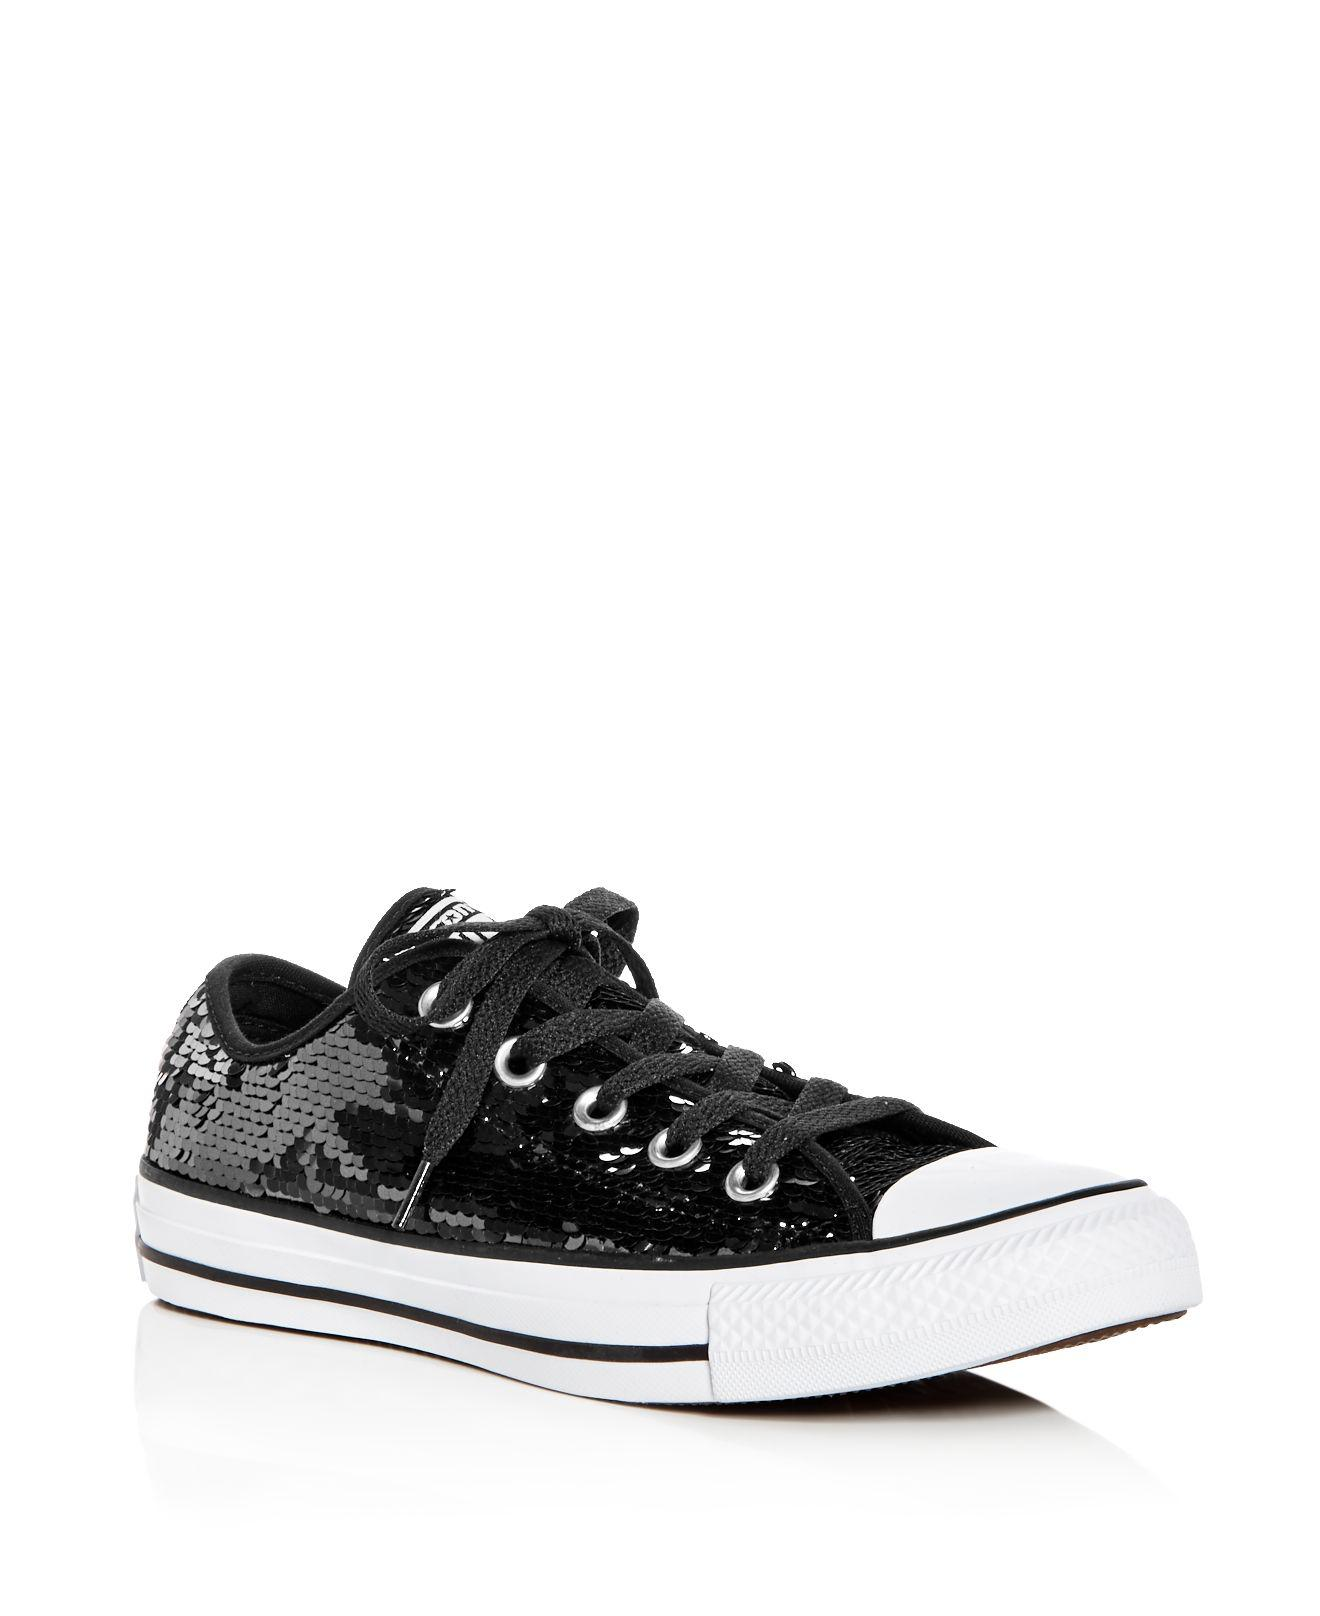 Converse Women's Chuck Taylor All Star Sequin Lace Up Sneakers hrt3Ro